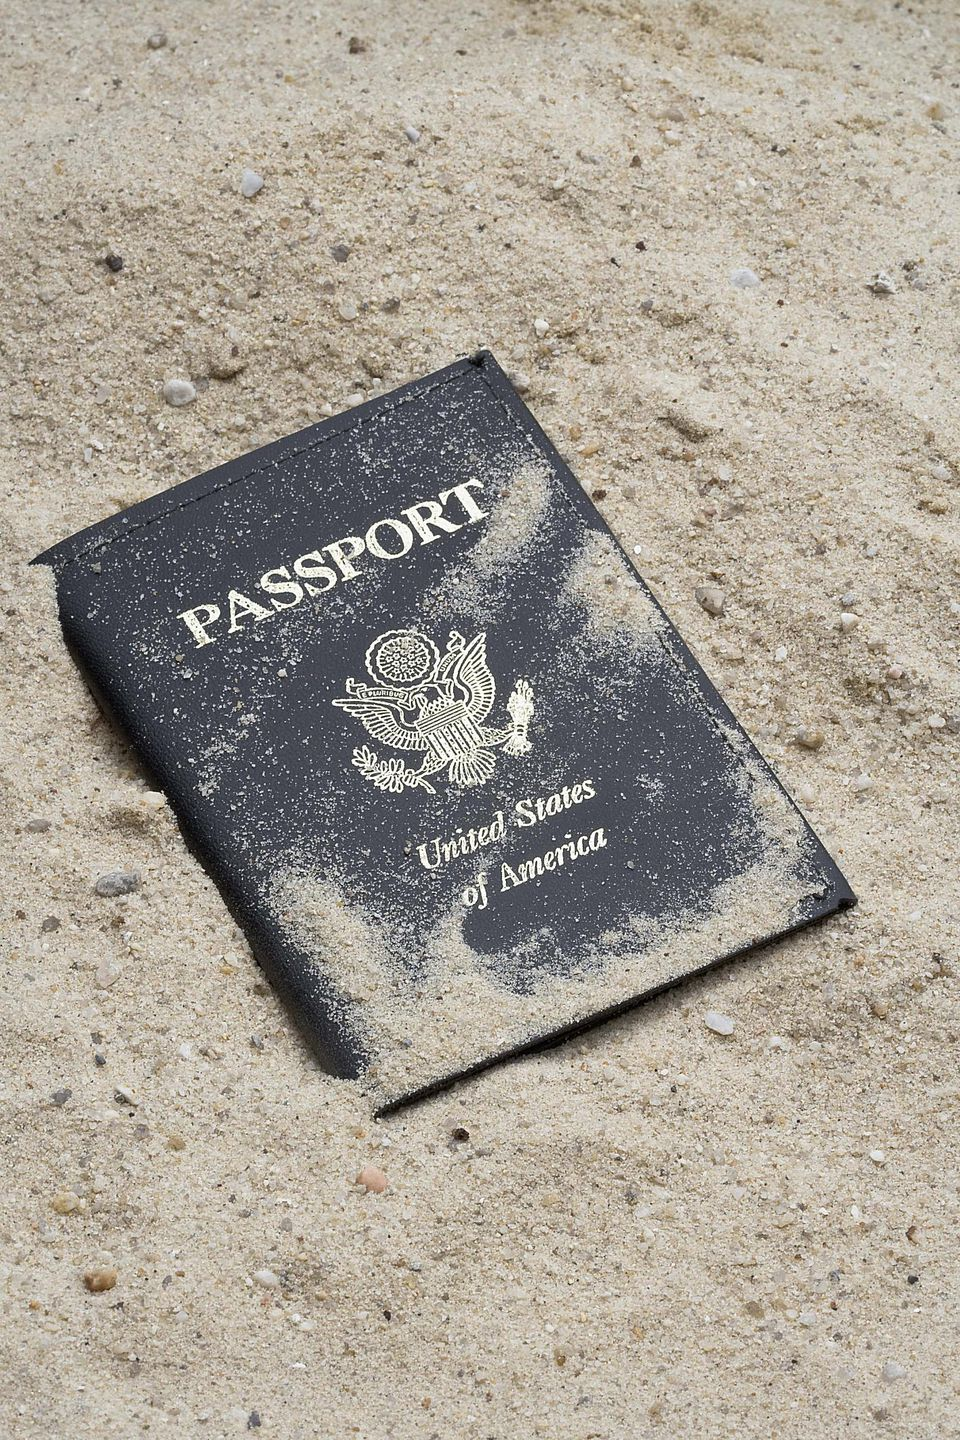 How to replace a lost or stolen passport abroad falaconquin